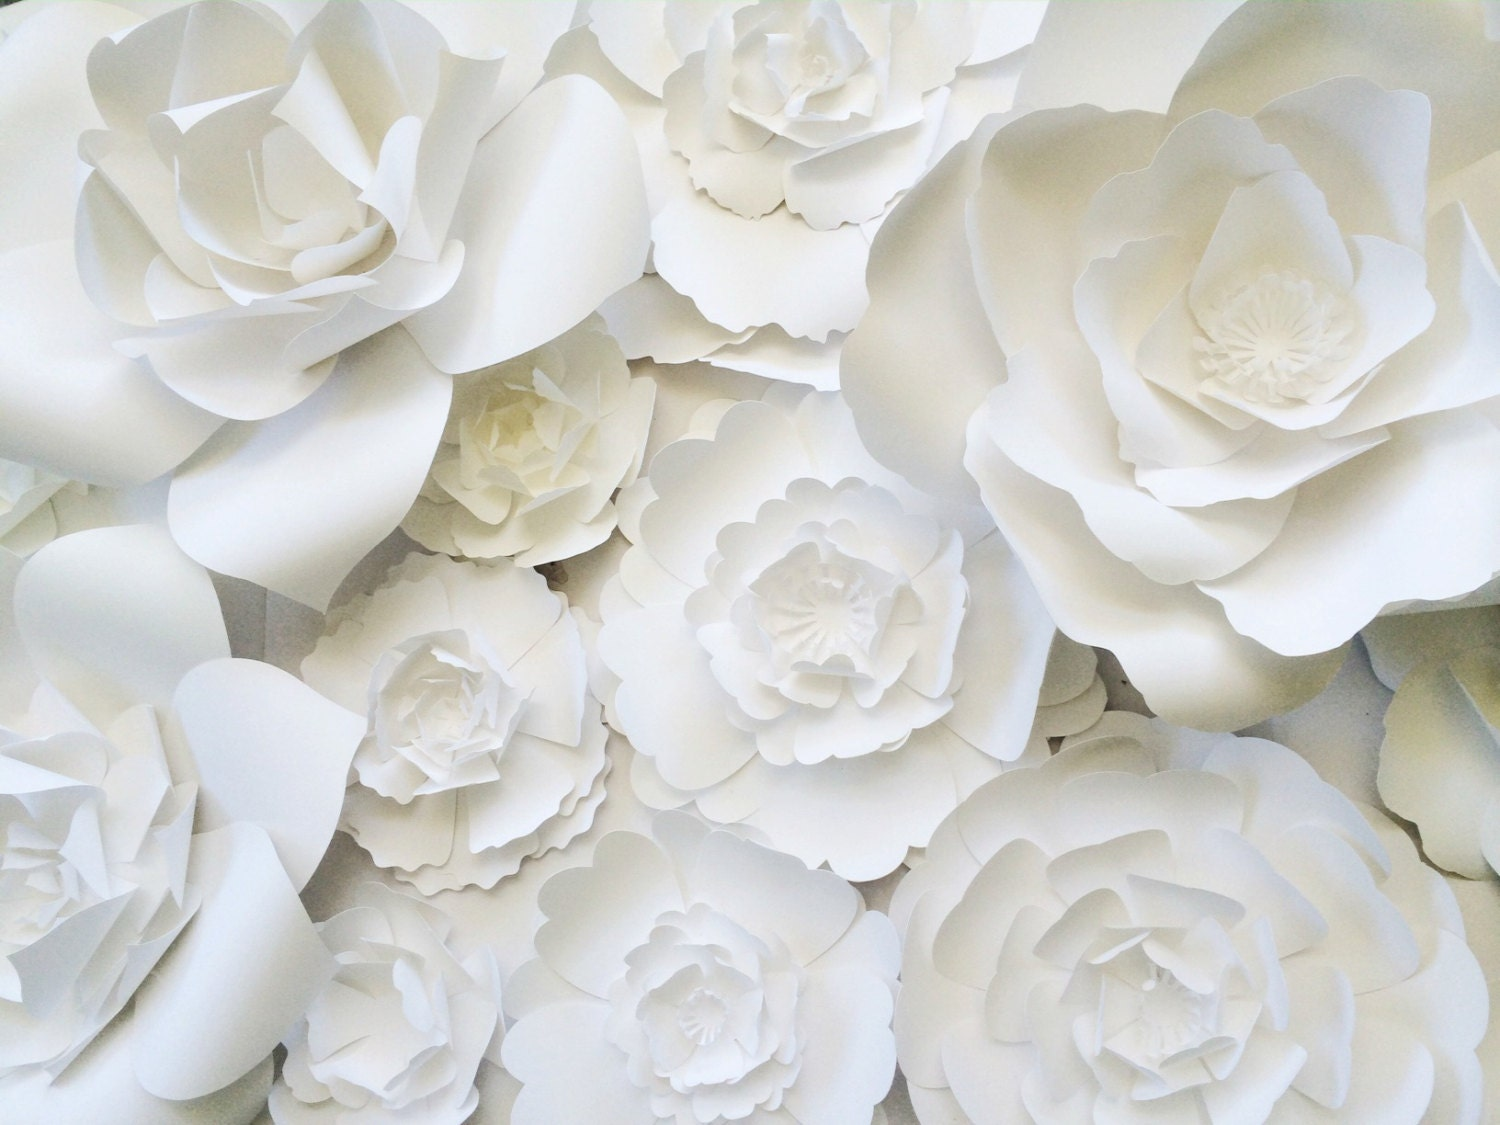 Paper flower wall decor large paper flower wall backdrop zoom mightylinksfo Image collections